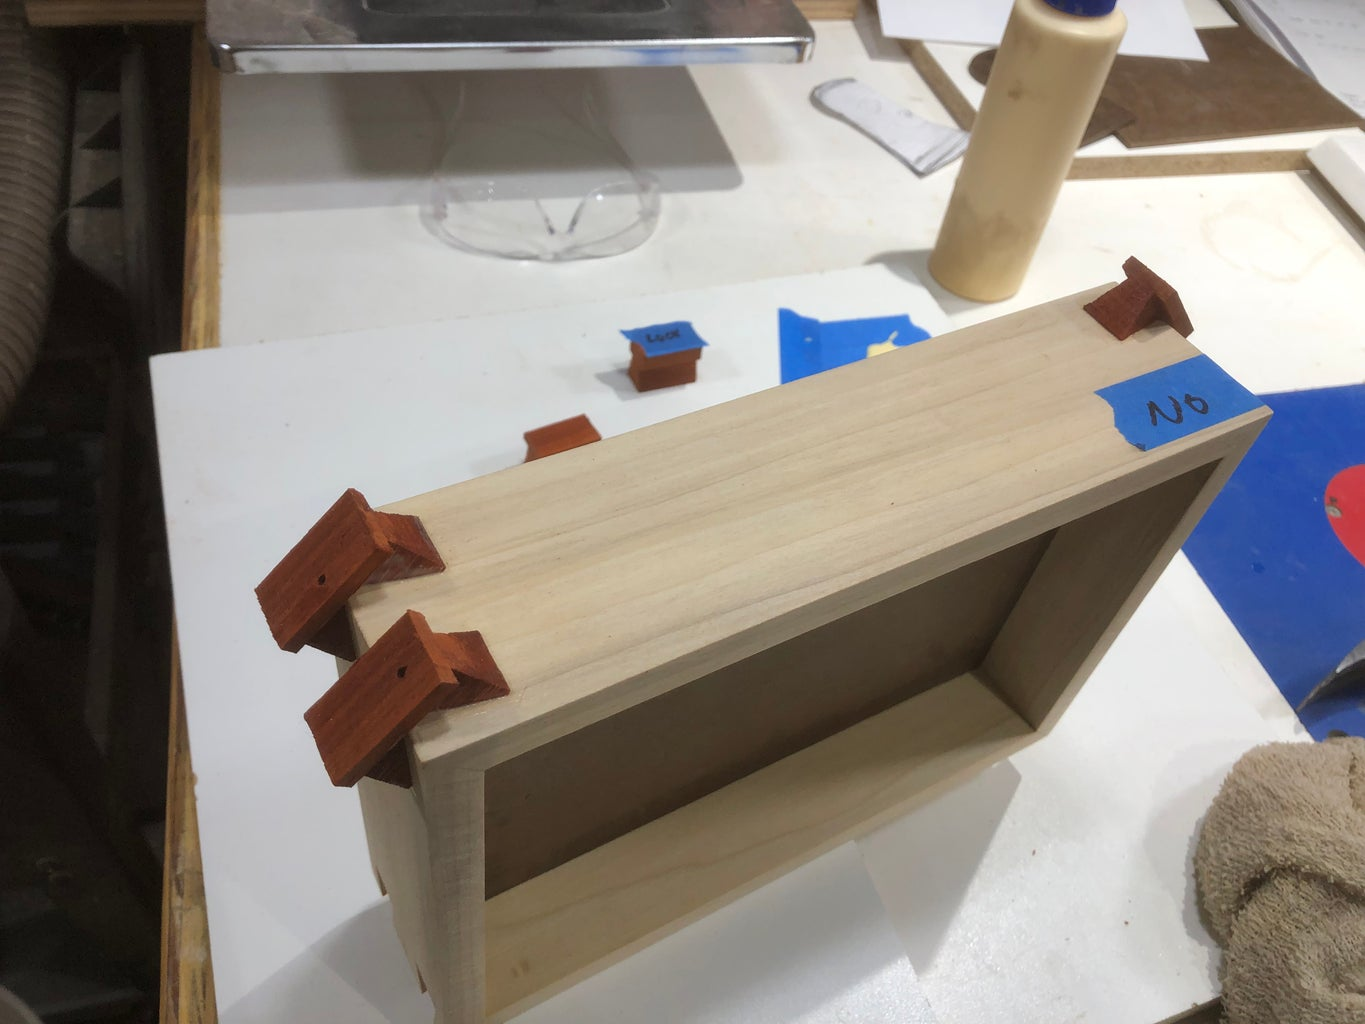 Key Glue Up, Trimming, and Sanding